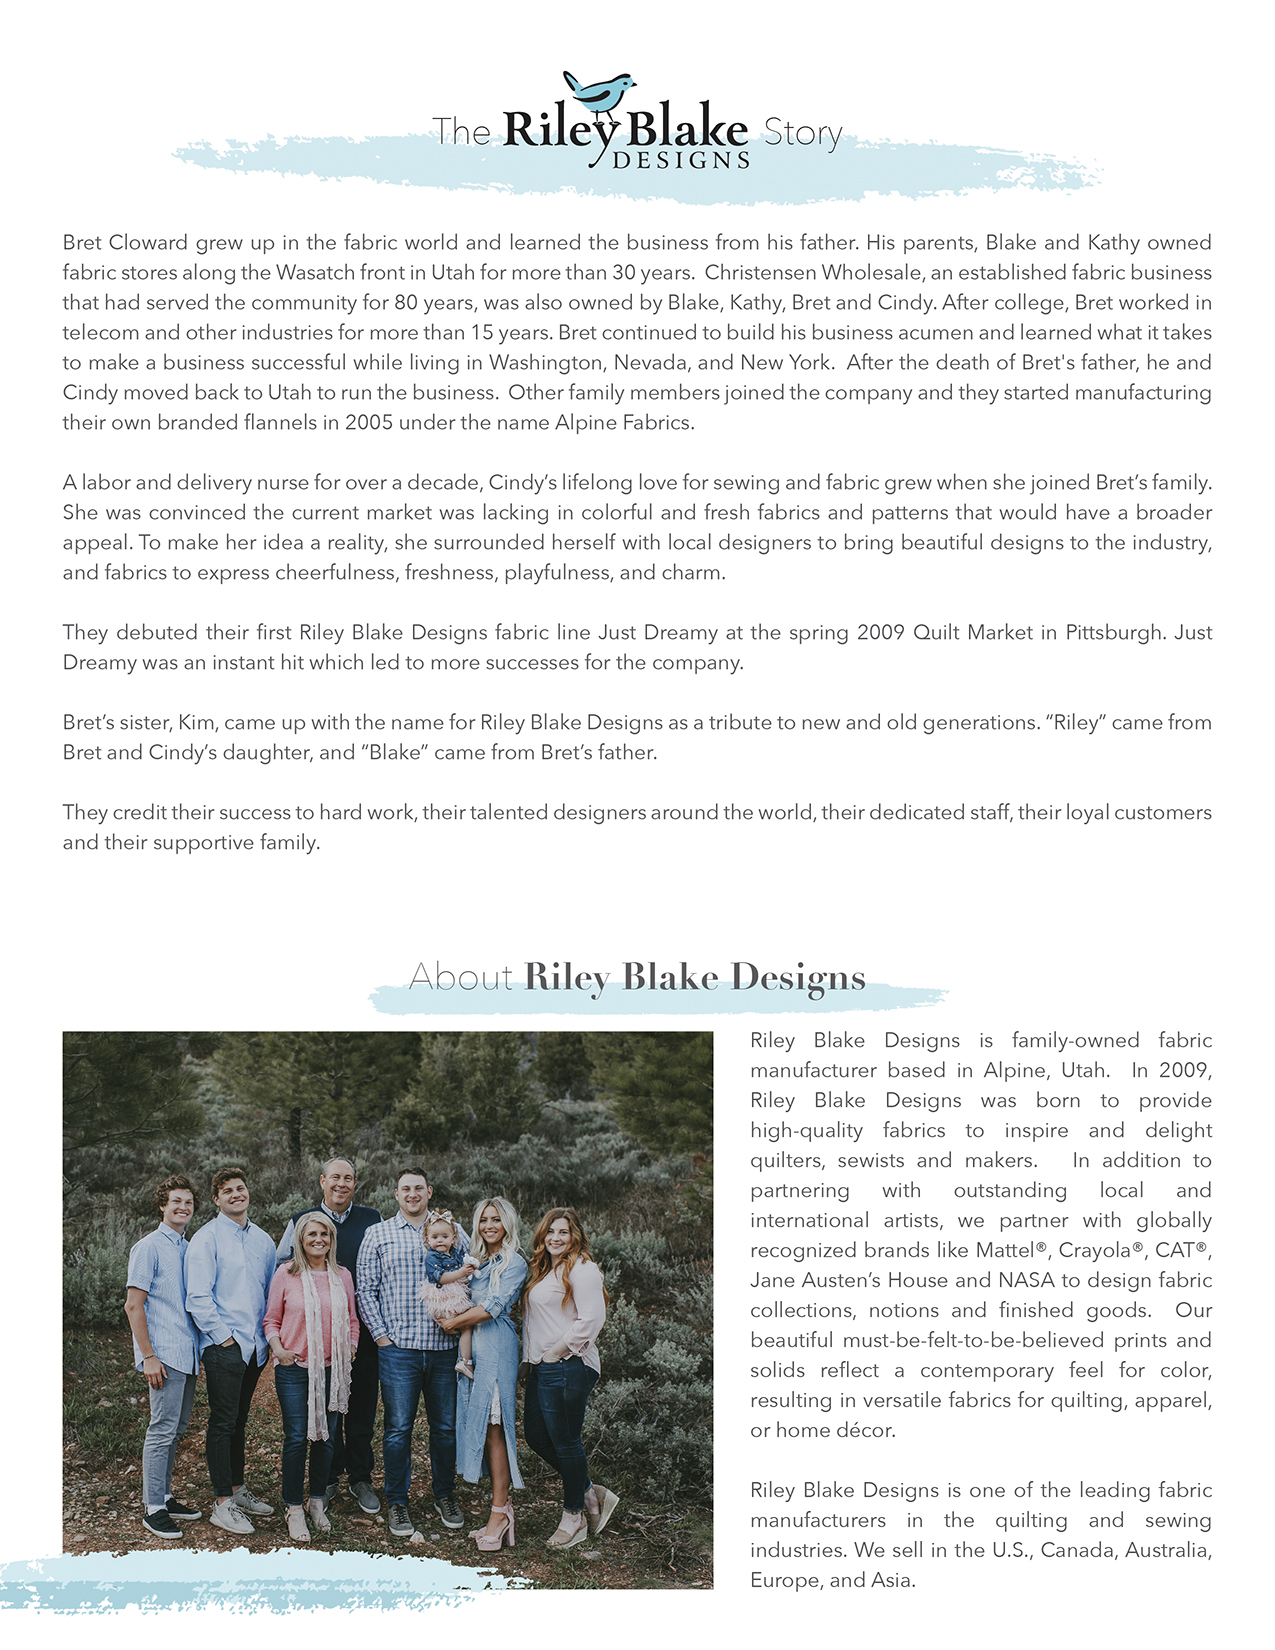 The Riley Blake Designs Story